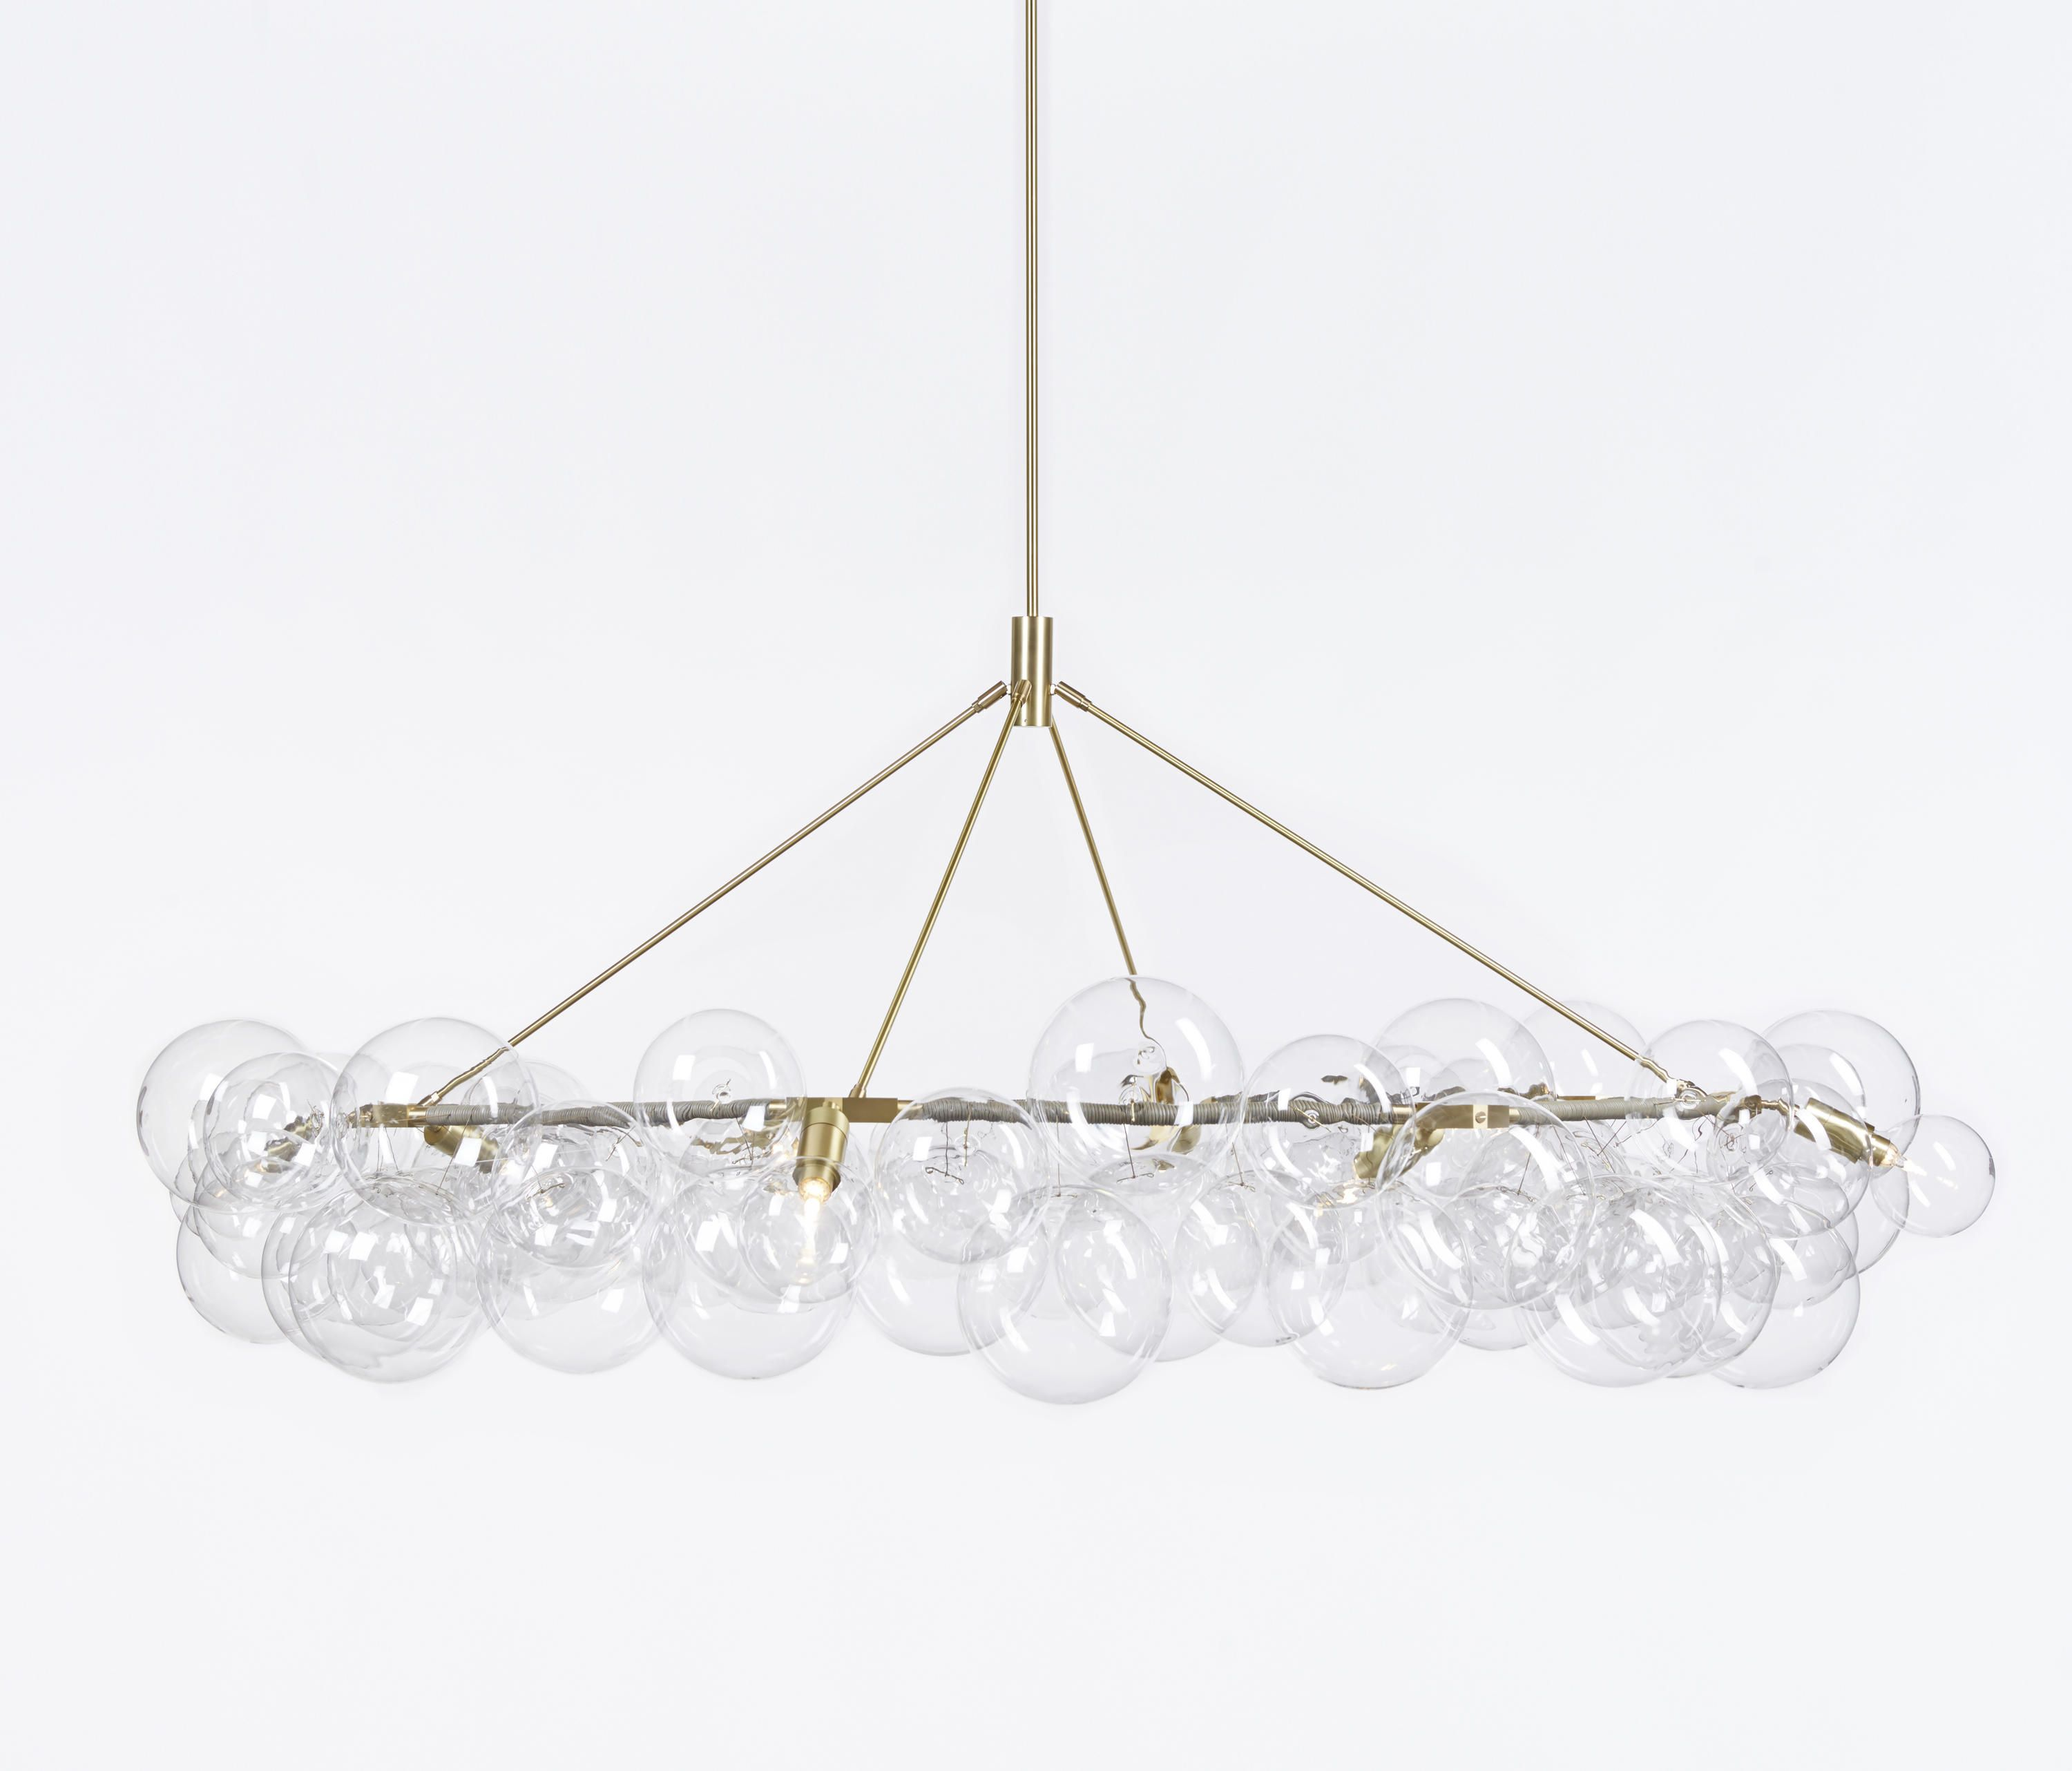 co chandelier rnd cascade of products design copy bicycle gray no bn pendant lunar glass cover cord atmospheric